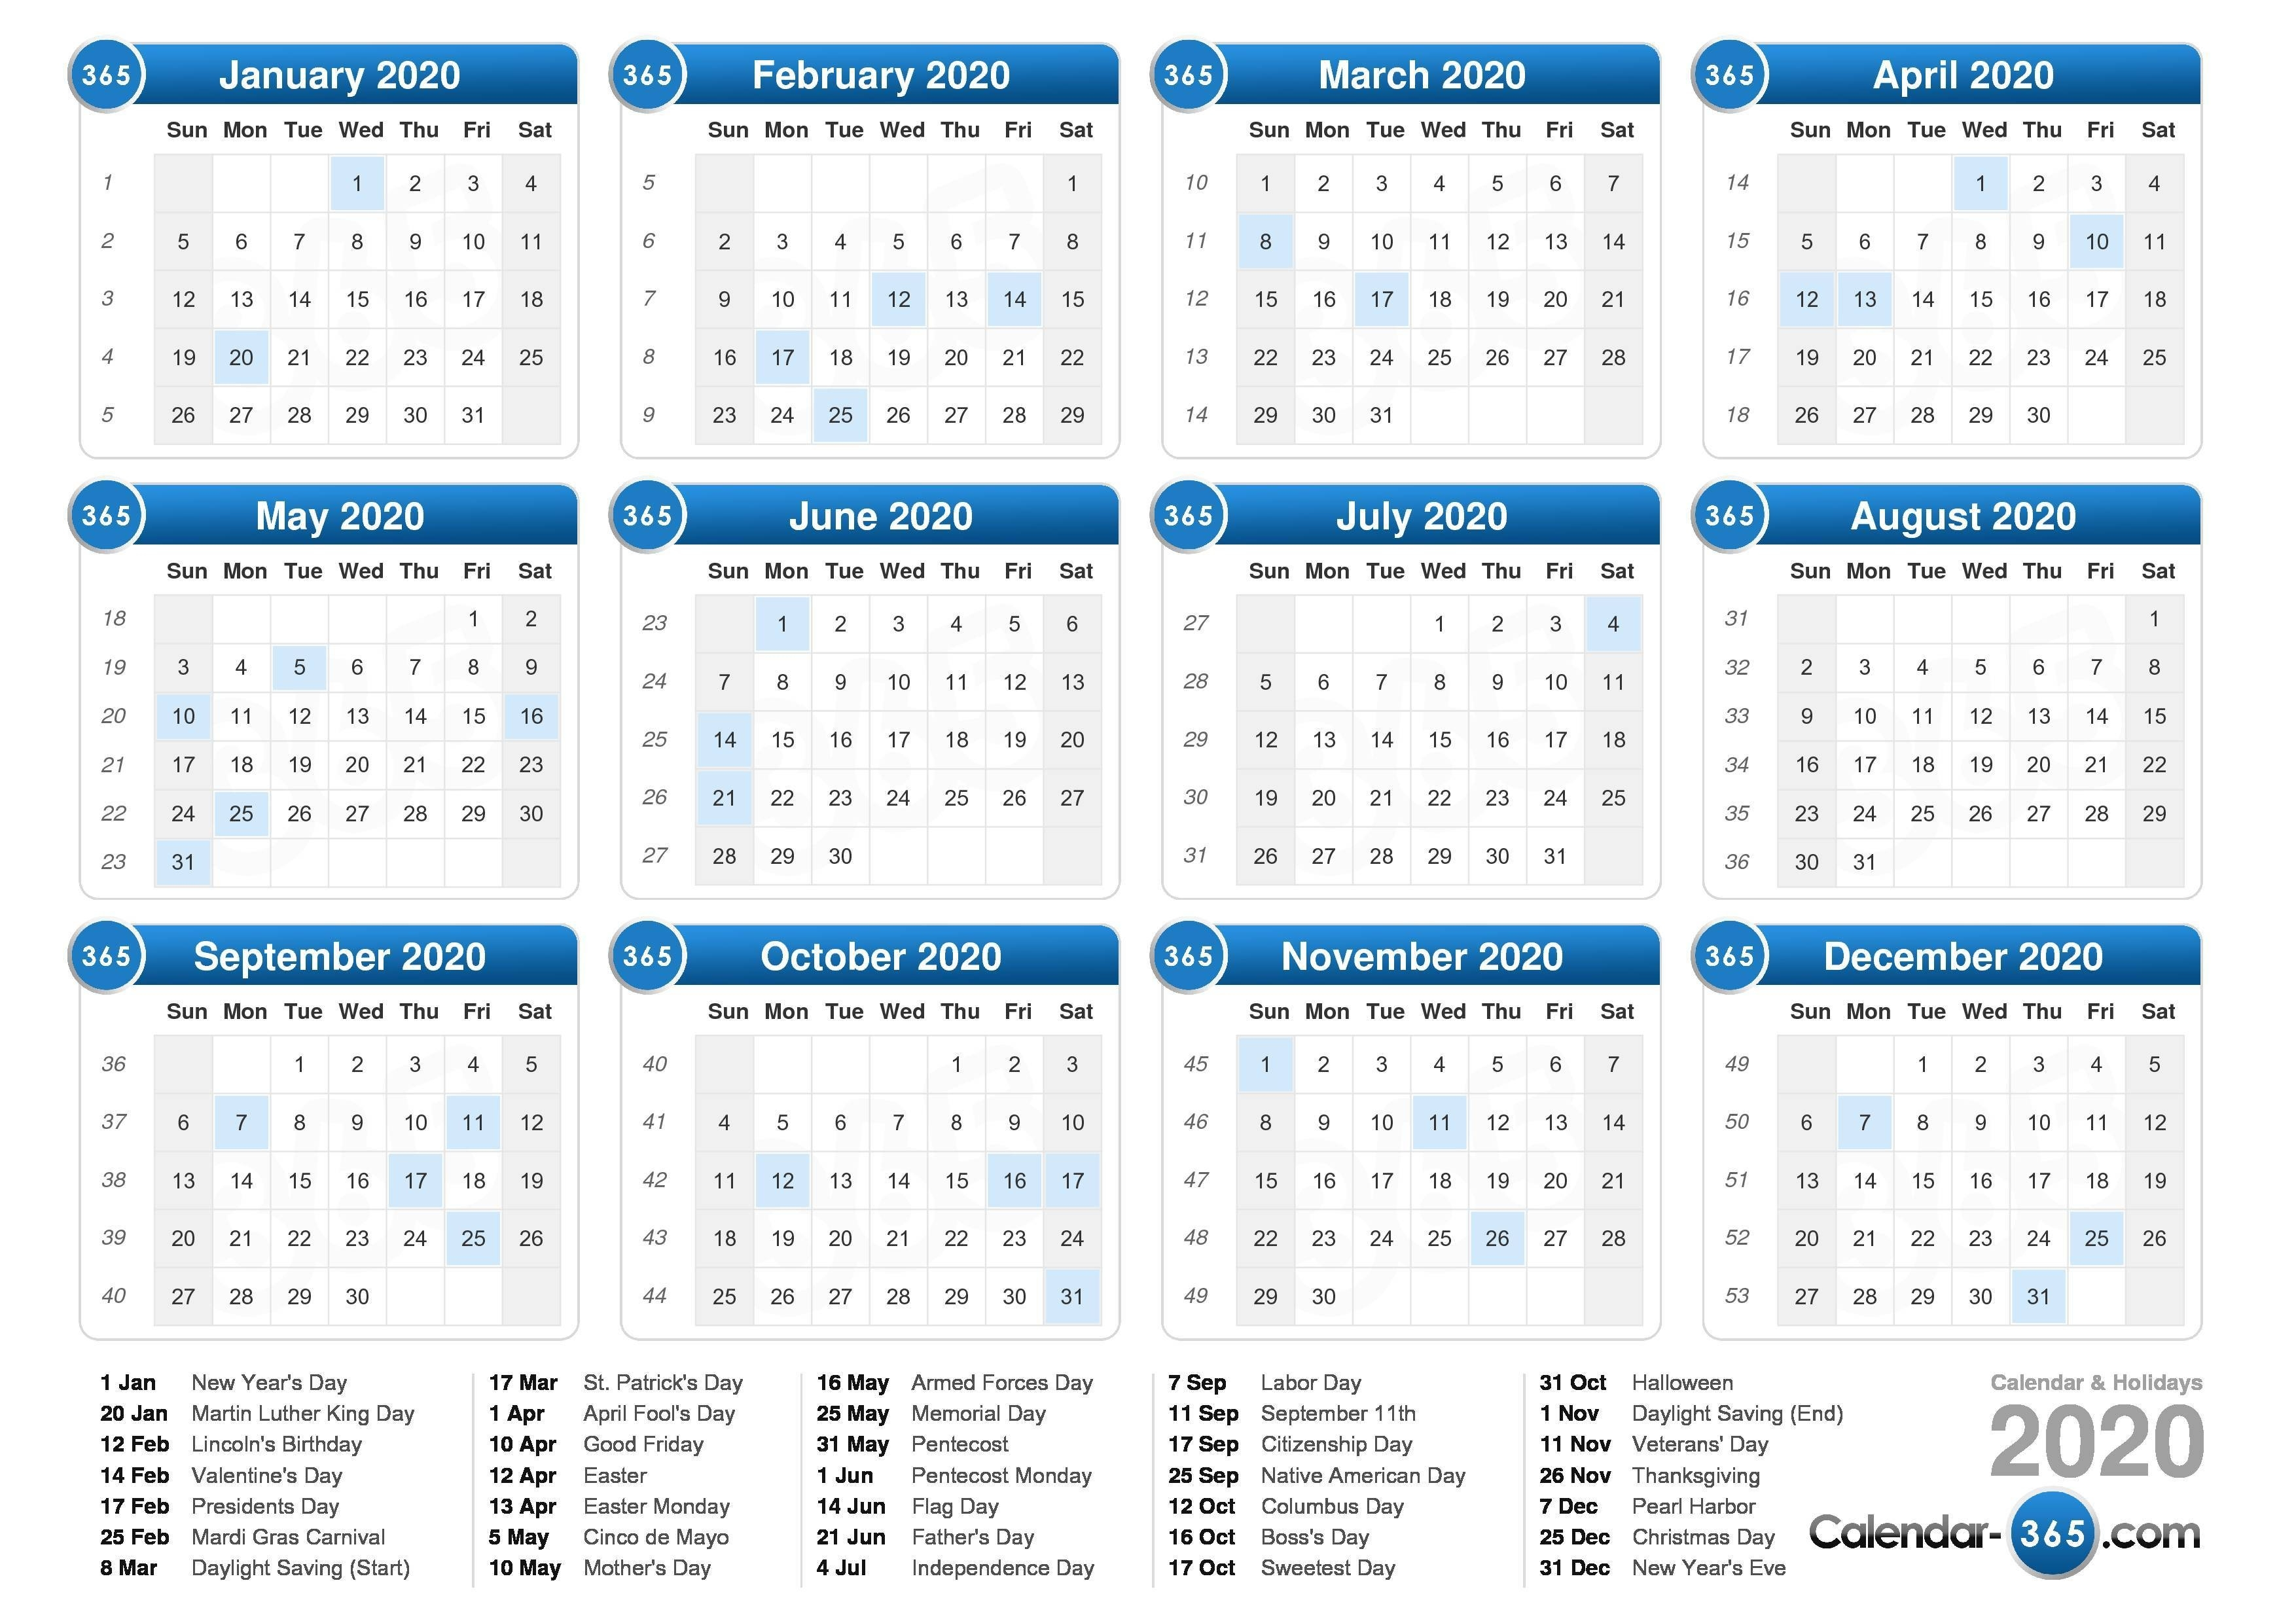 2020 Calendar-January Through June 2020 Calendar